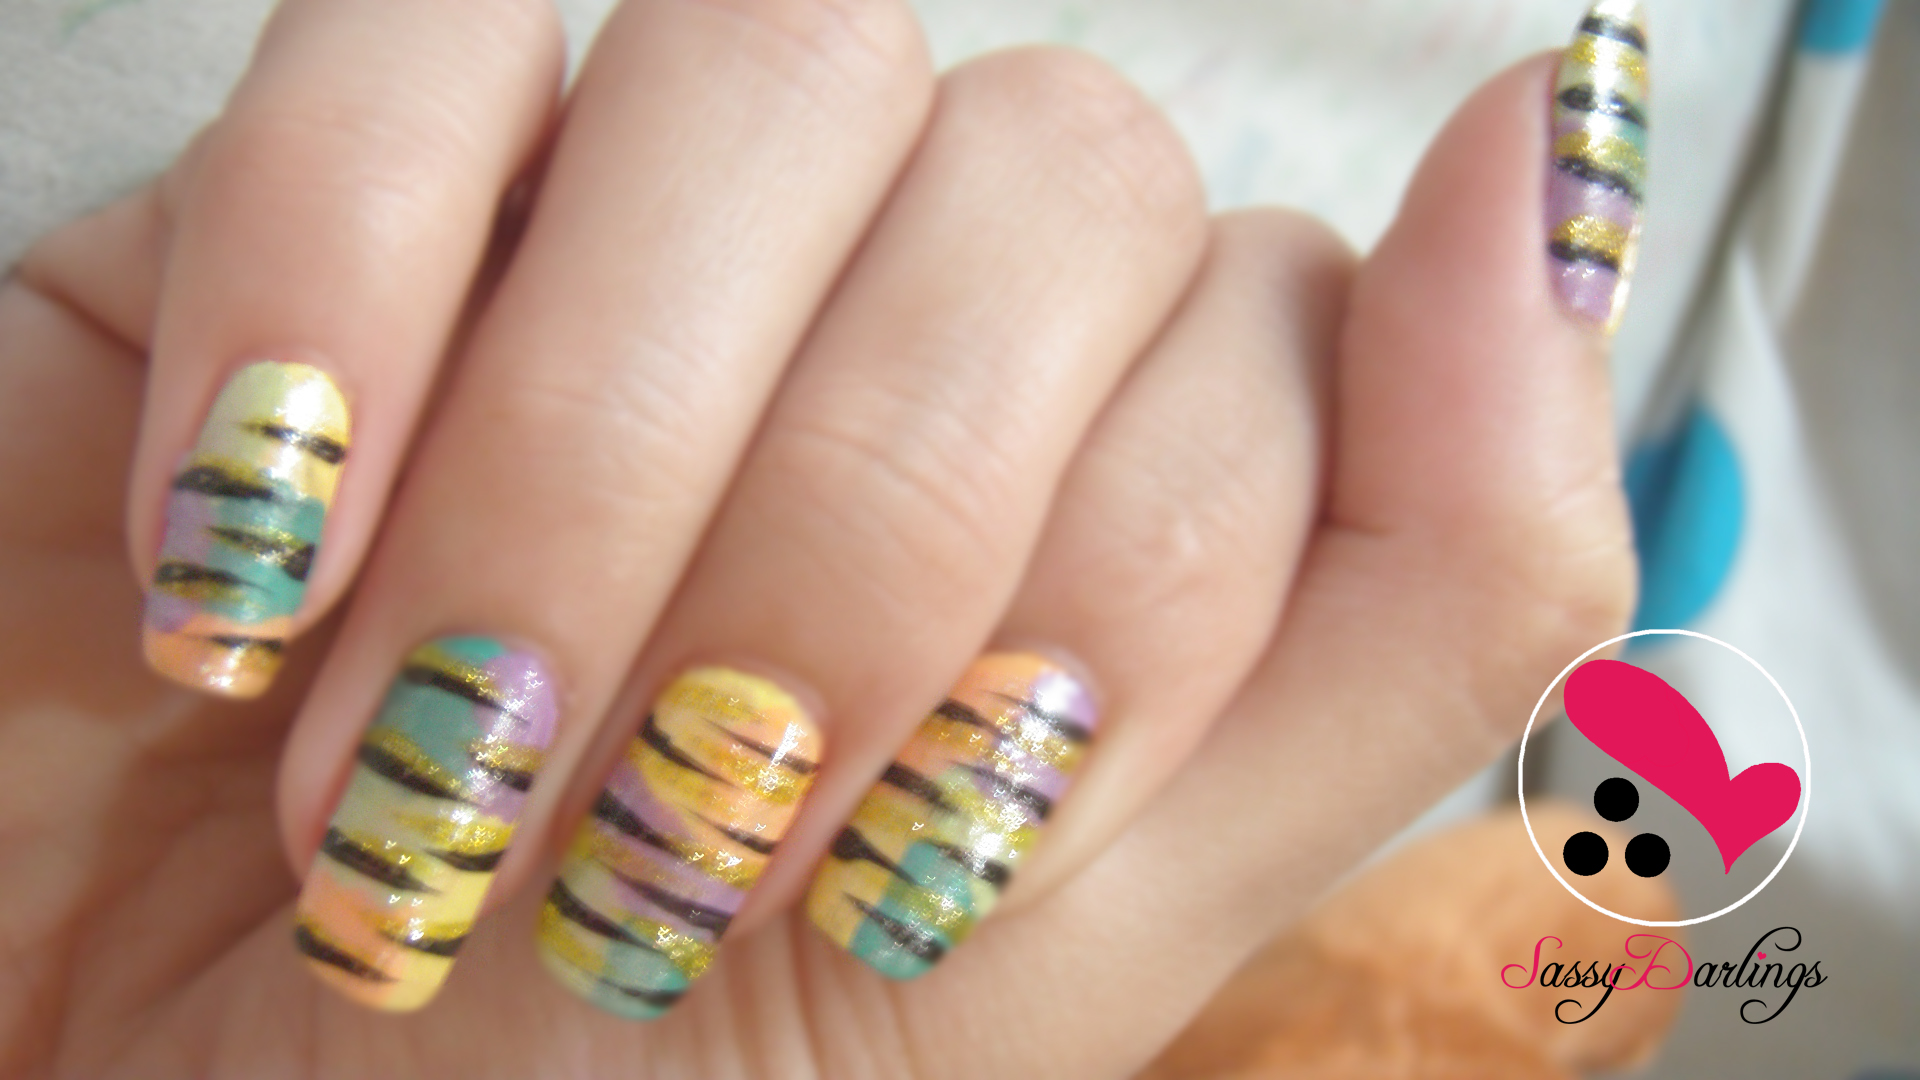 Nails Art: Colorful Zebra Print Nail Art Tutorial